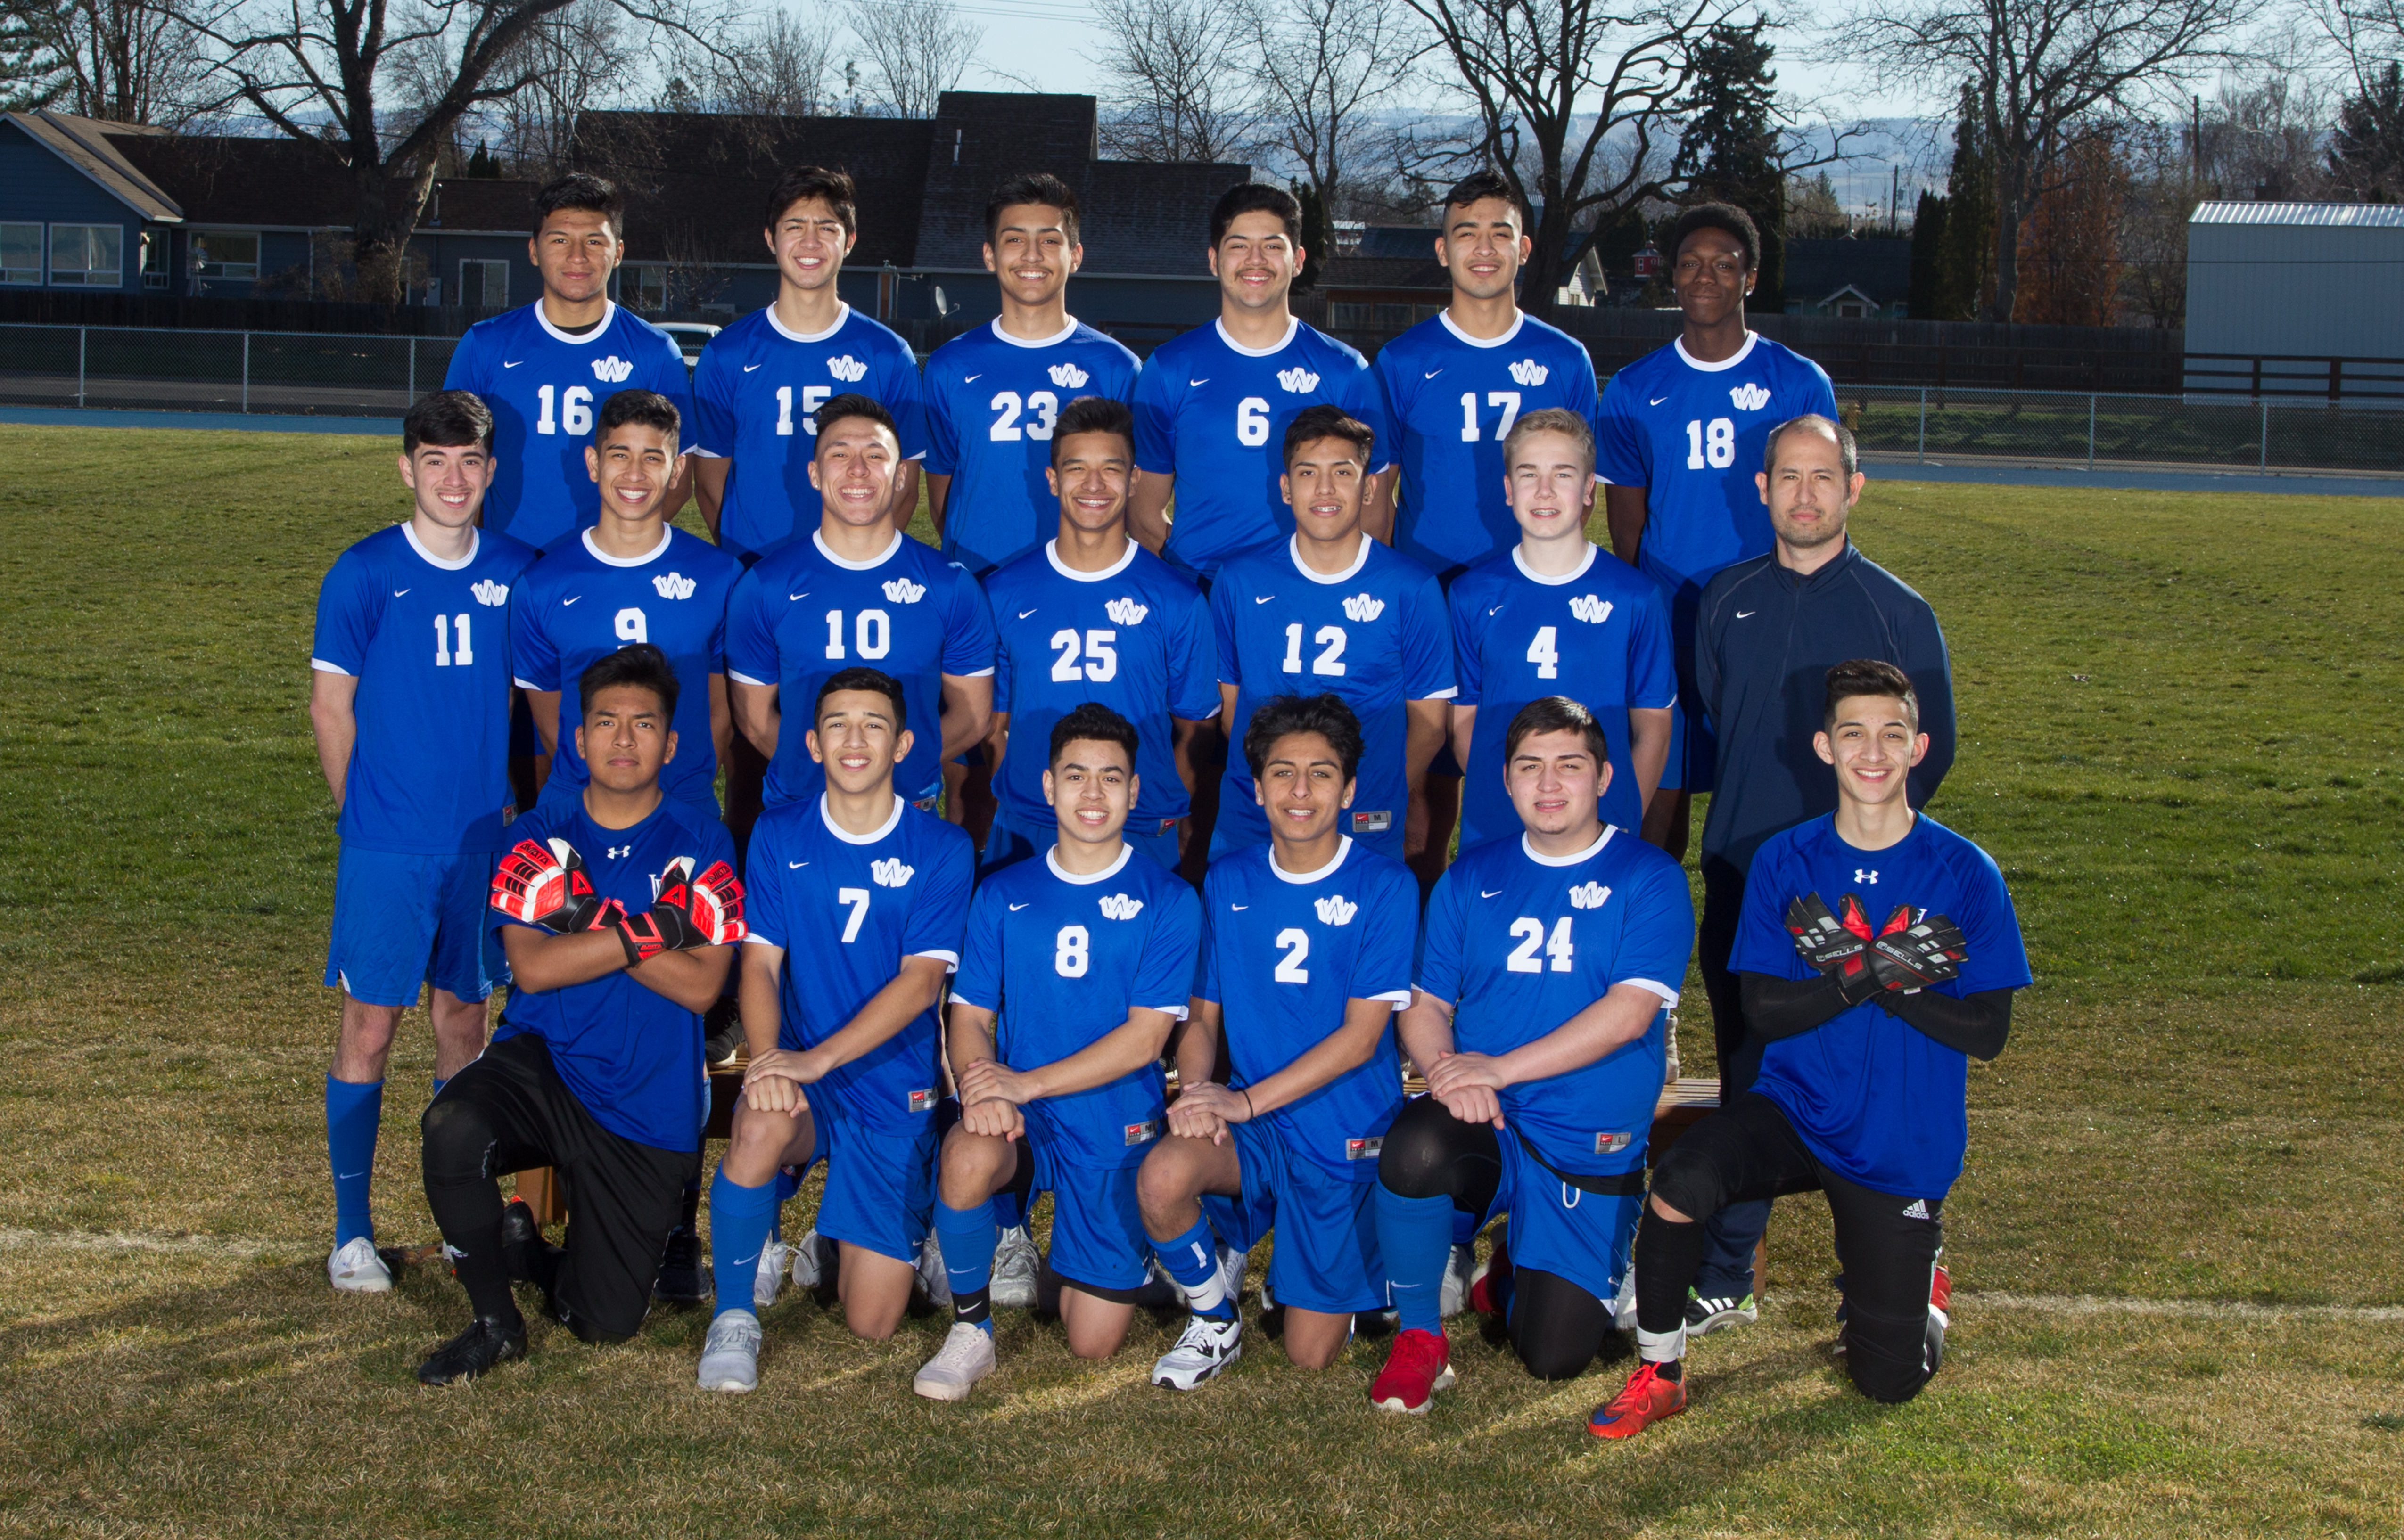 images/athletics/Soccer_Boys/2018_Varsity.jpg